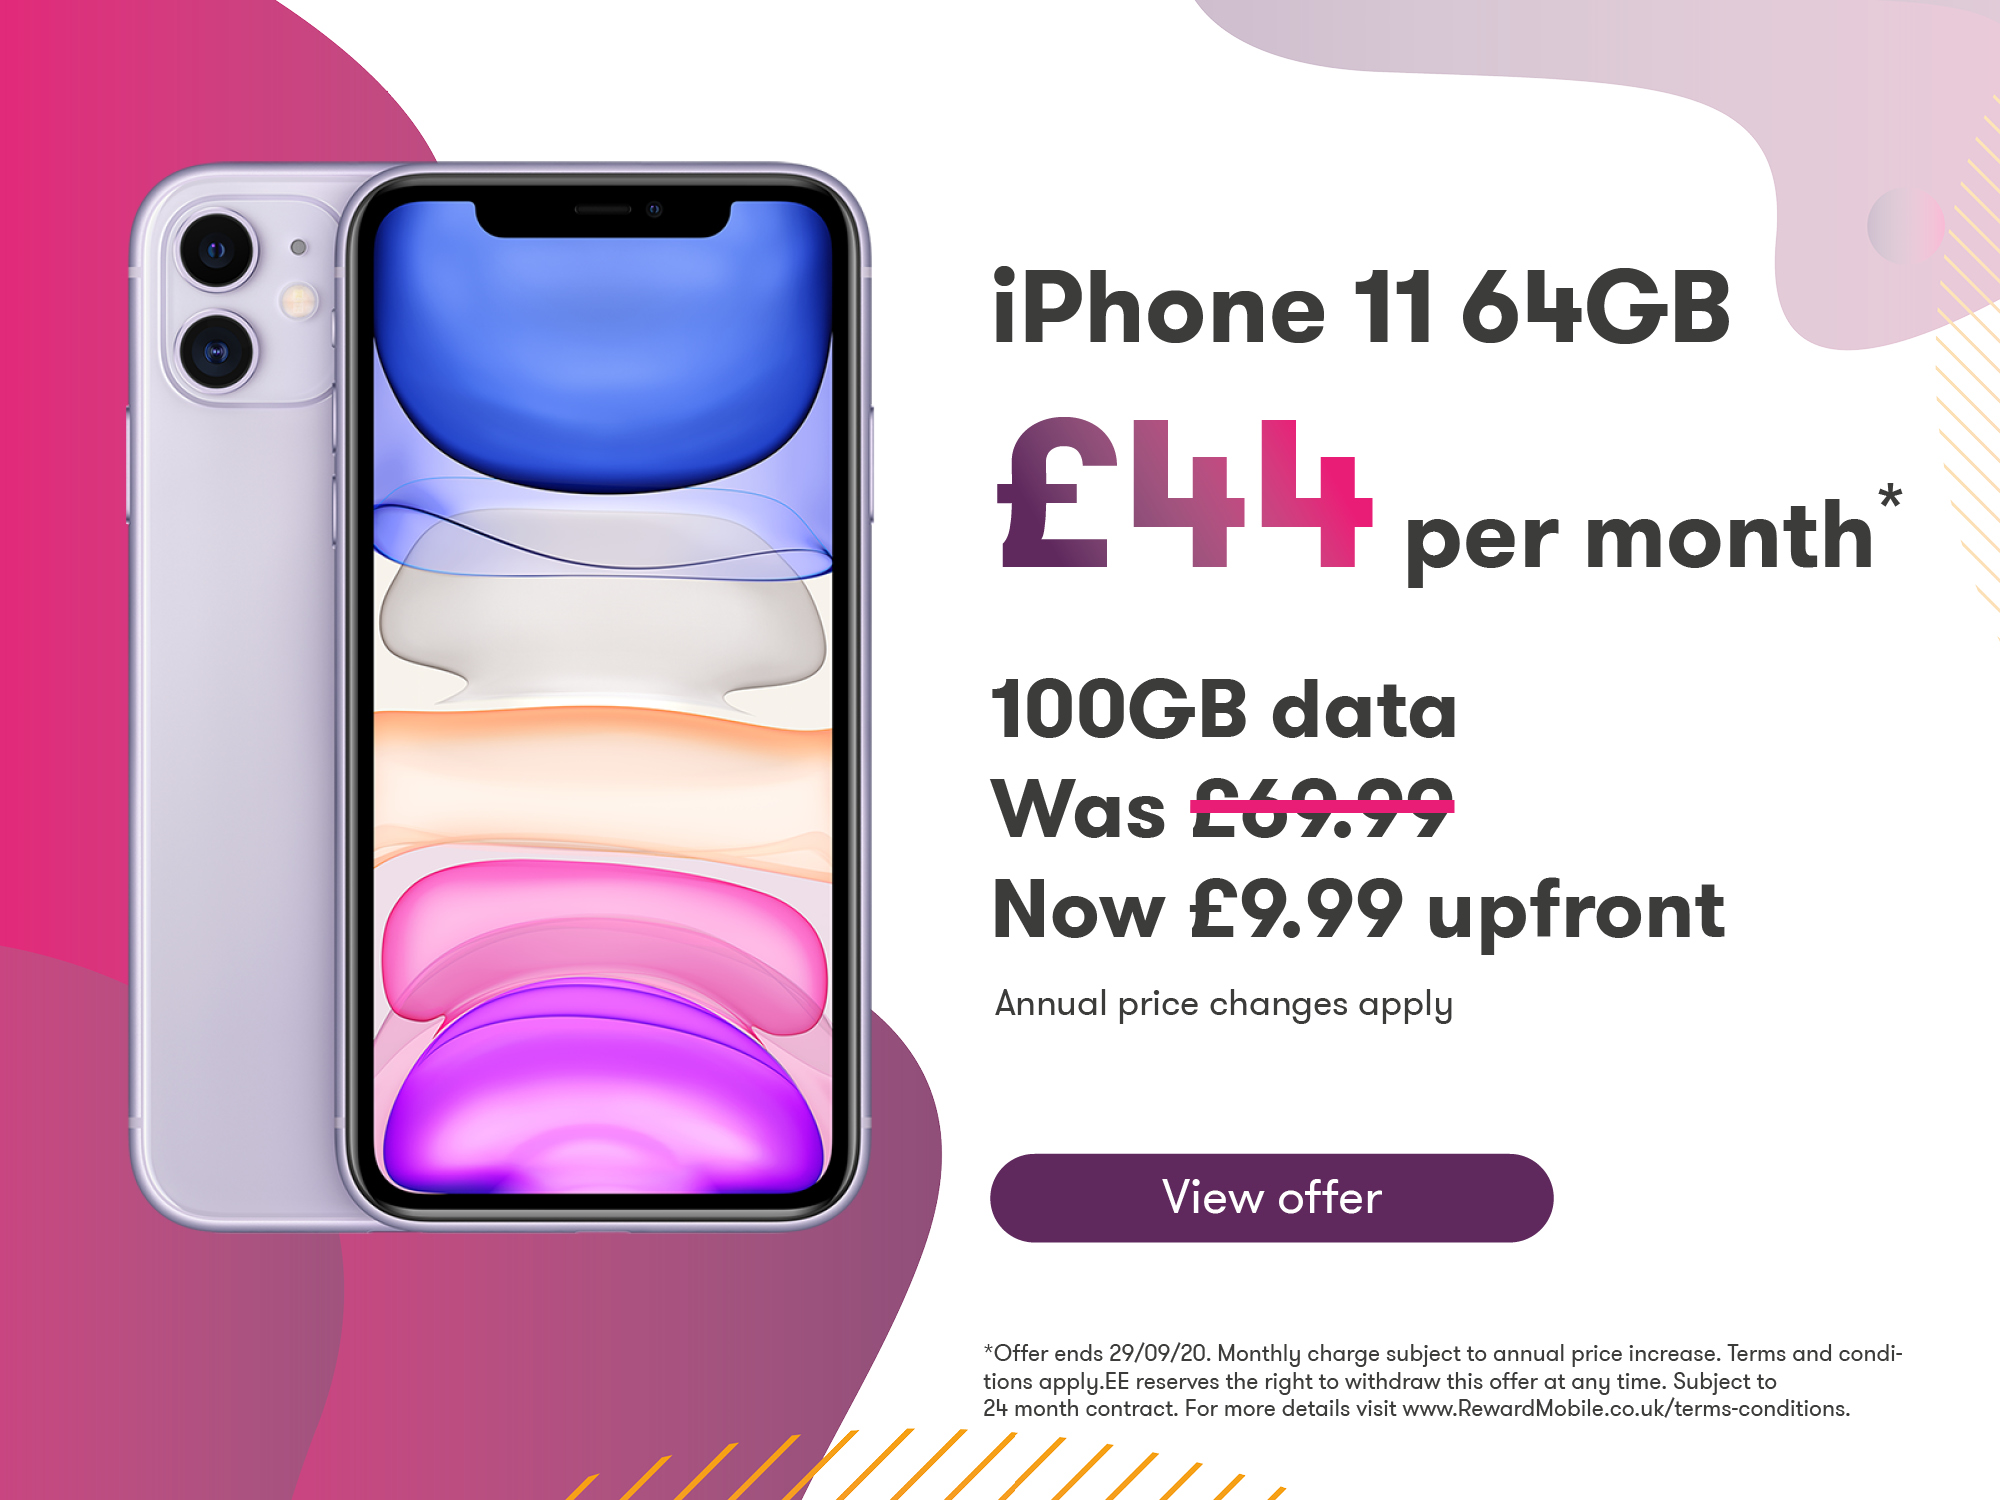 iPhone 11 Offer 44 9.99 Upfront